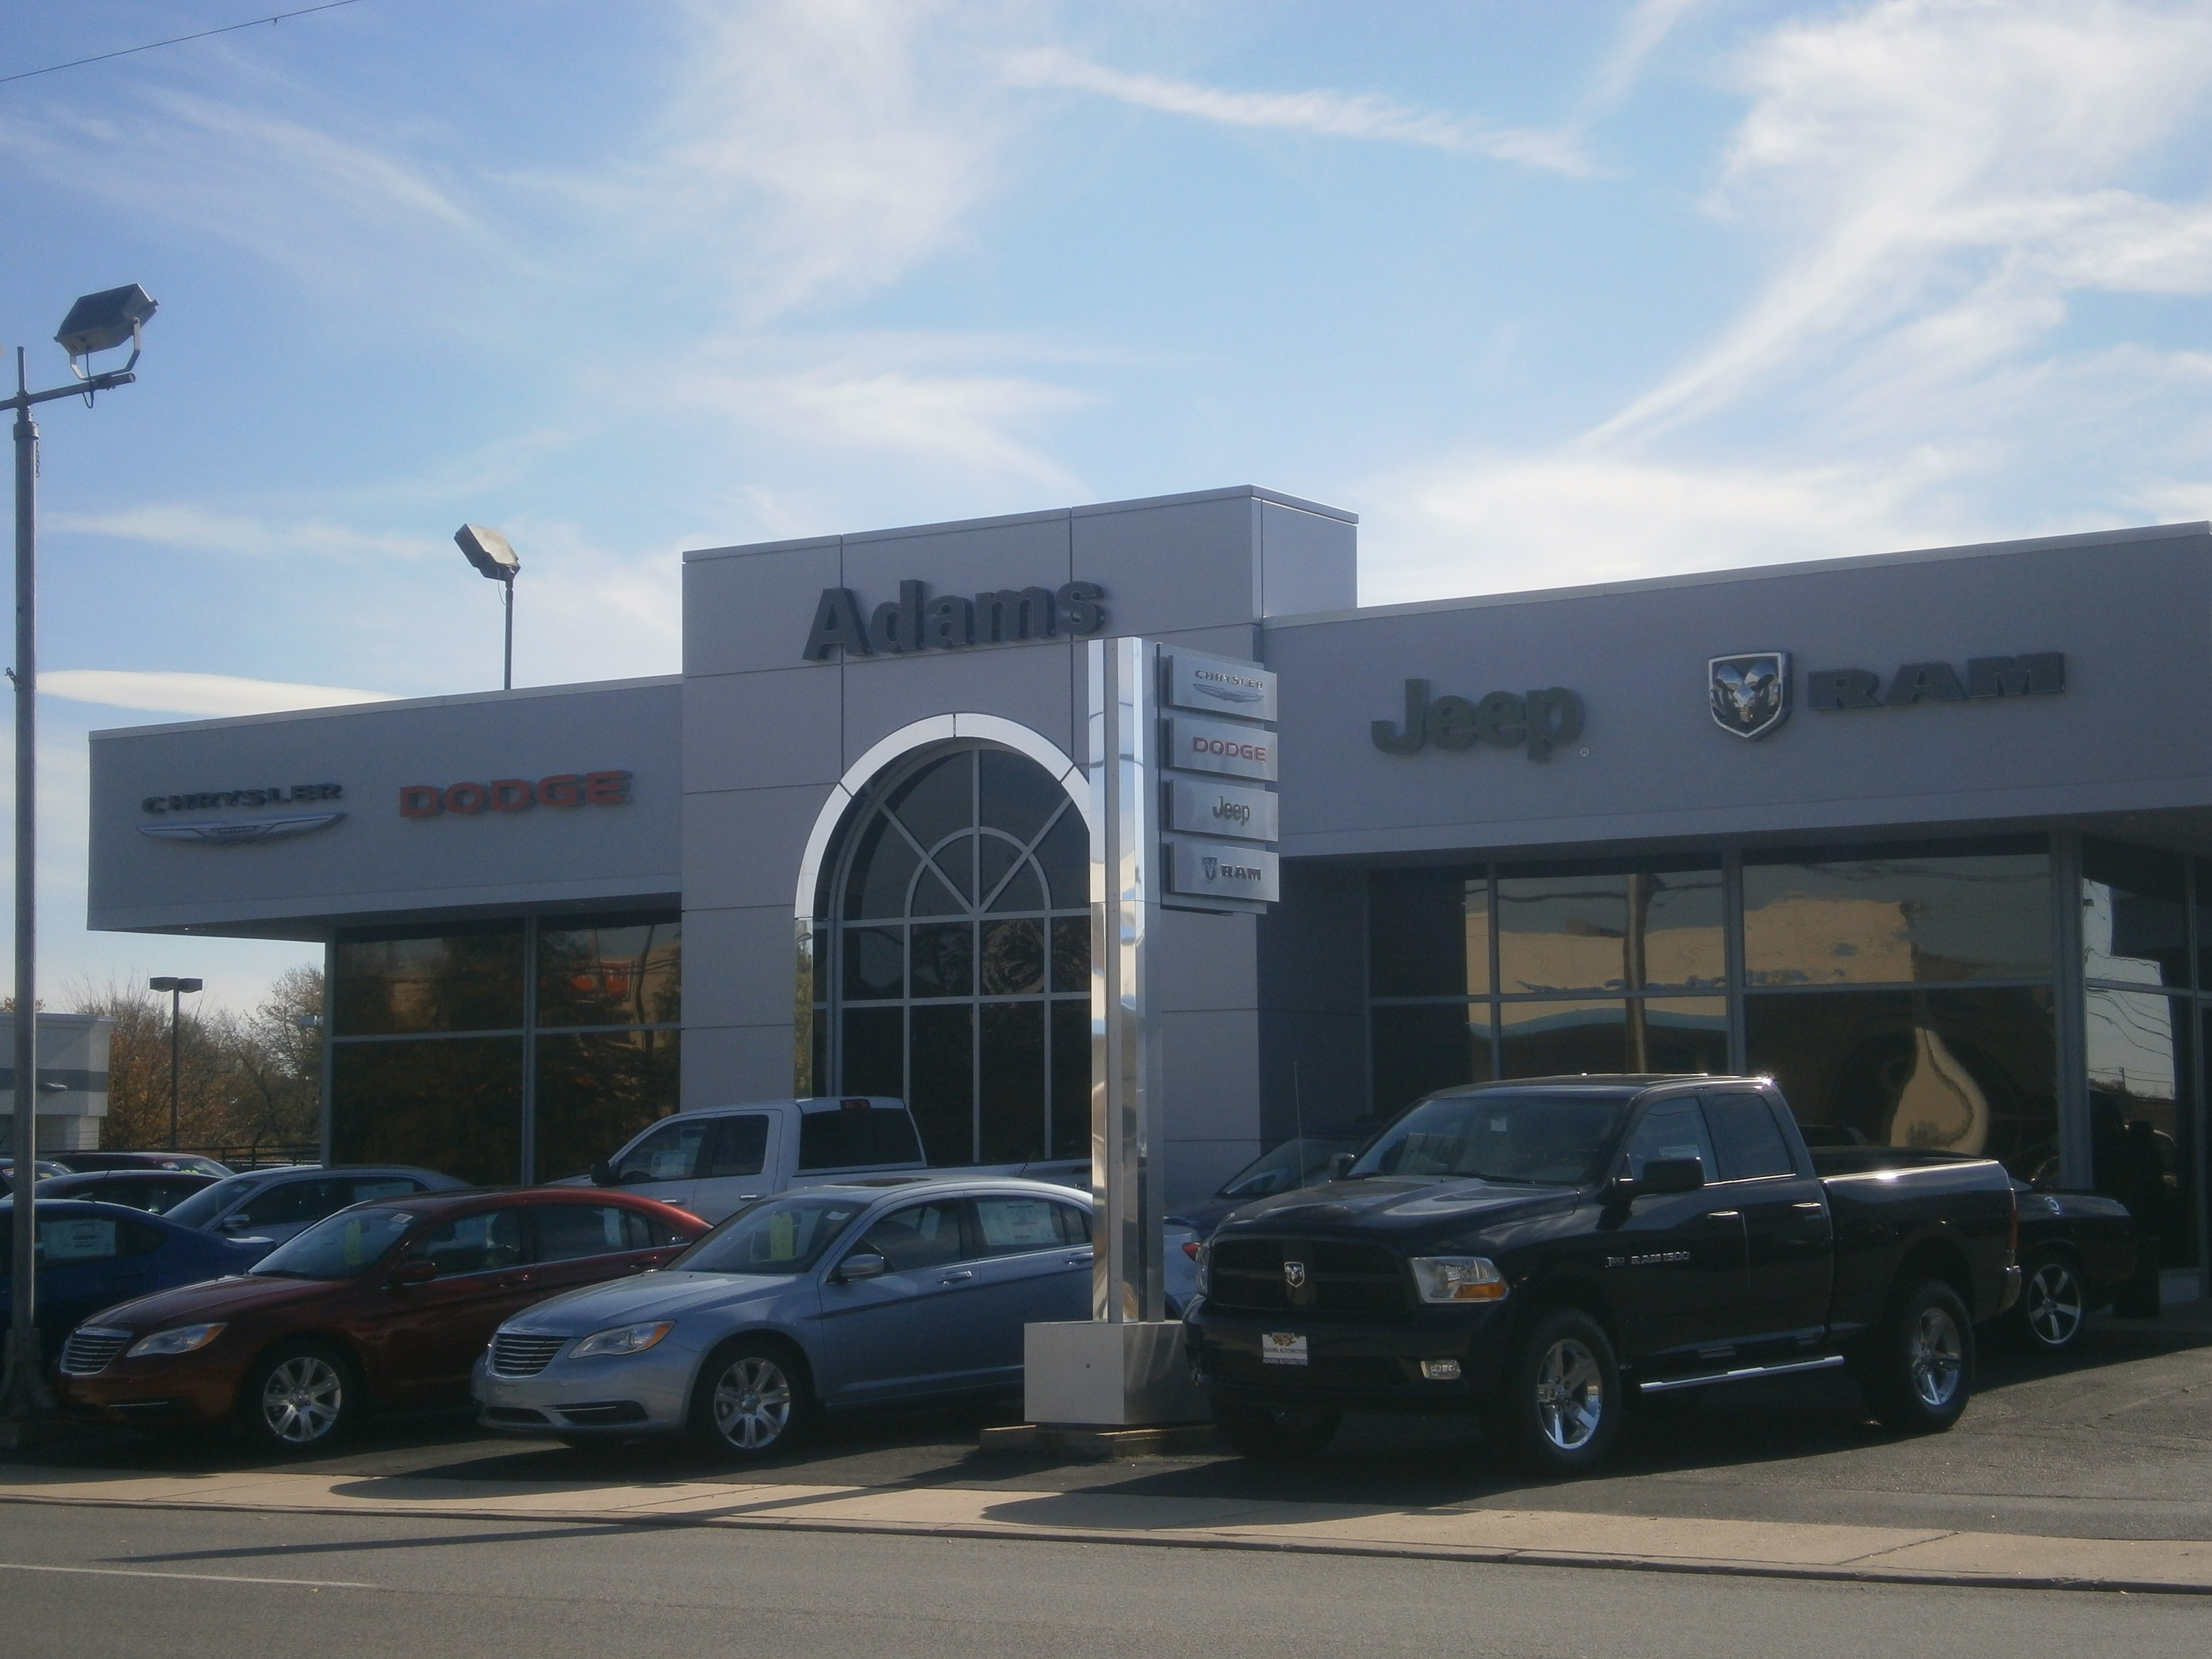 adams chrysler dodge jeep ram proudly serves drivers from arnold with. Cars Review. Best American Auto & Cars Review